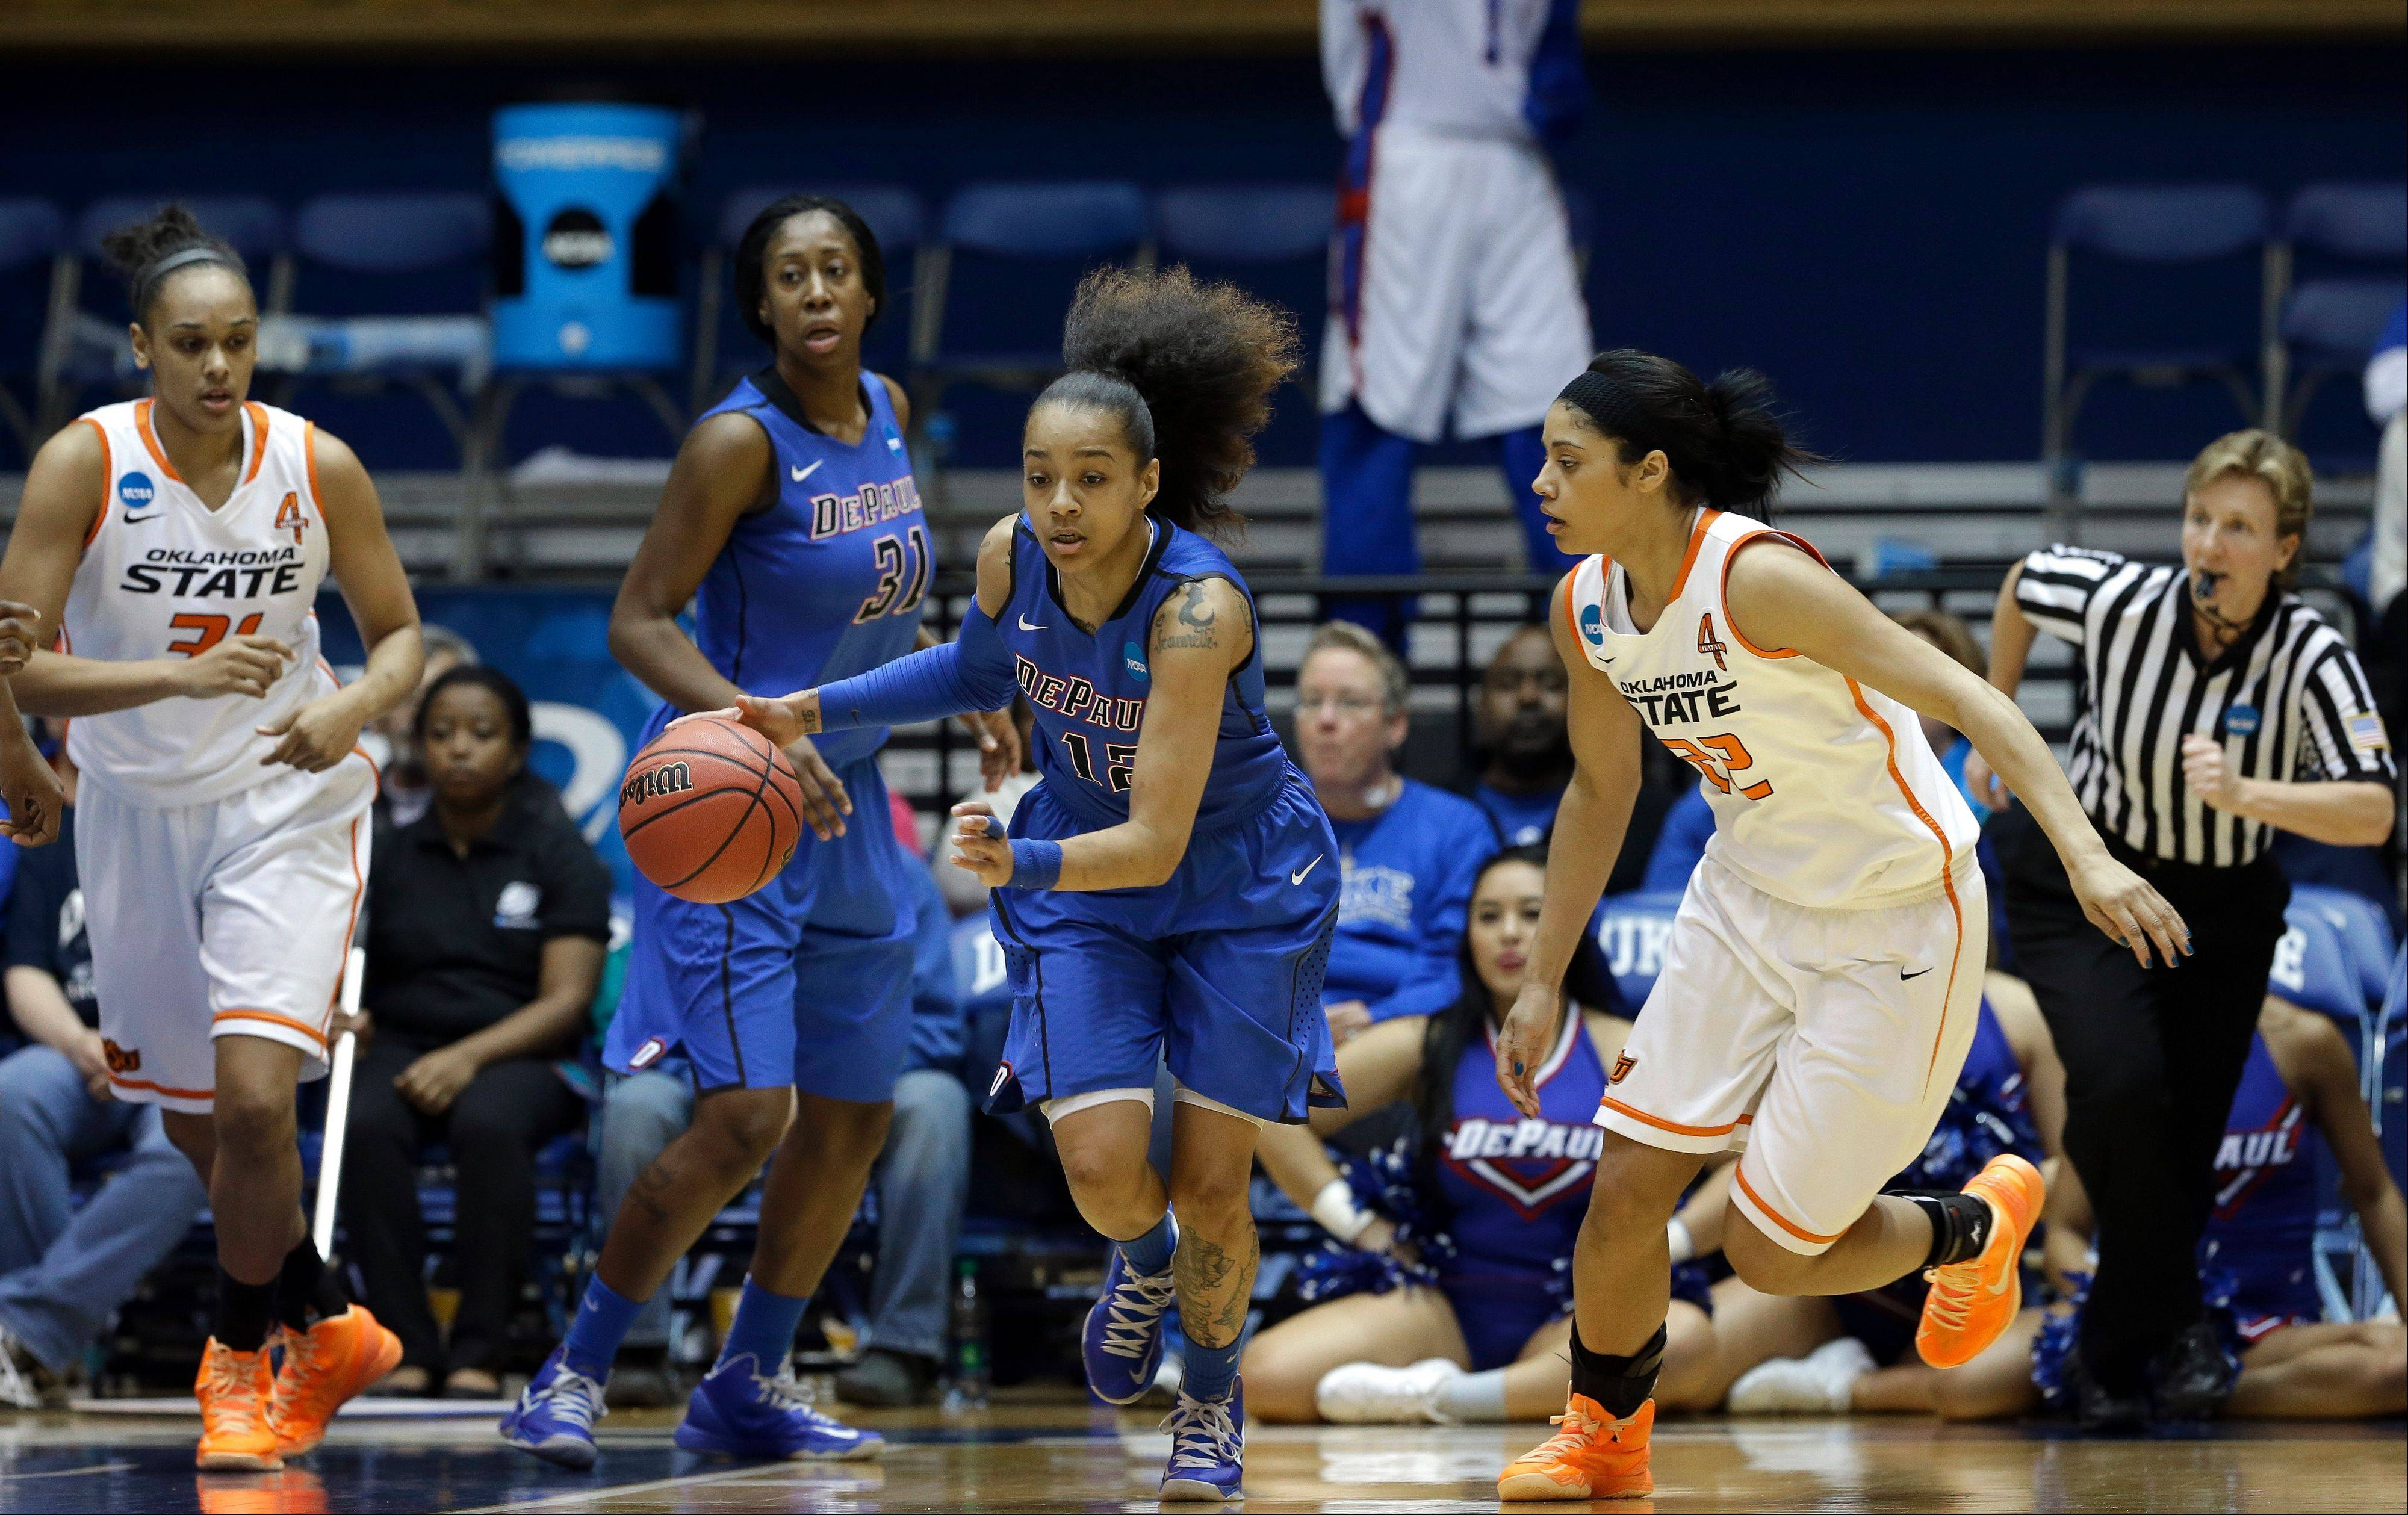 DePaul guard Brittany Hrynko, shown here leading the break against Oklahoma State in NCAA tournament action last March, heads a deep roster for DePaul, which is favored to win the Big East title this season.